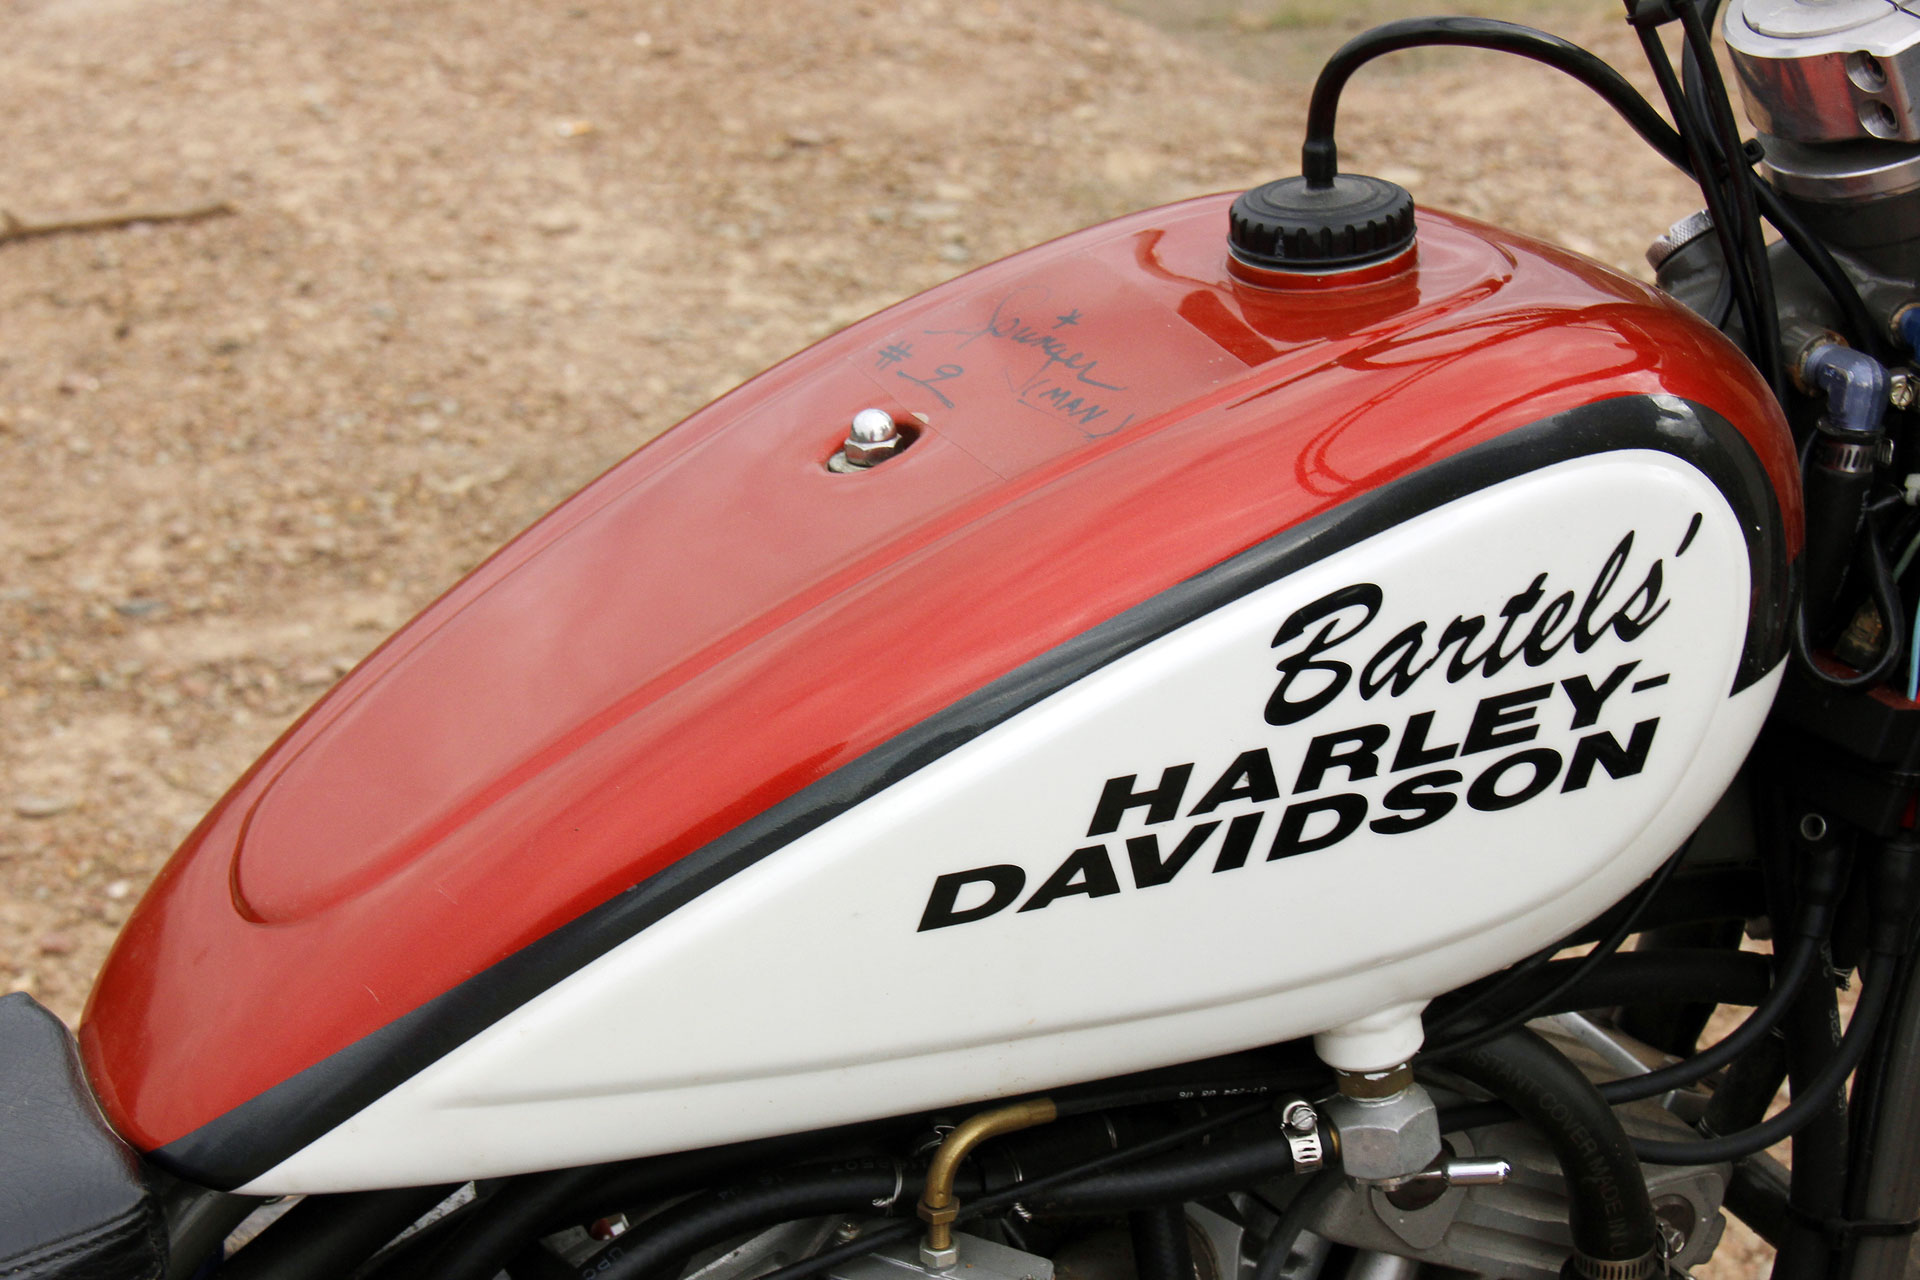 The Harley-Davidson XR 750 was the name in Flat Track racing for a very, very long time